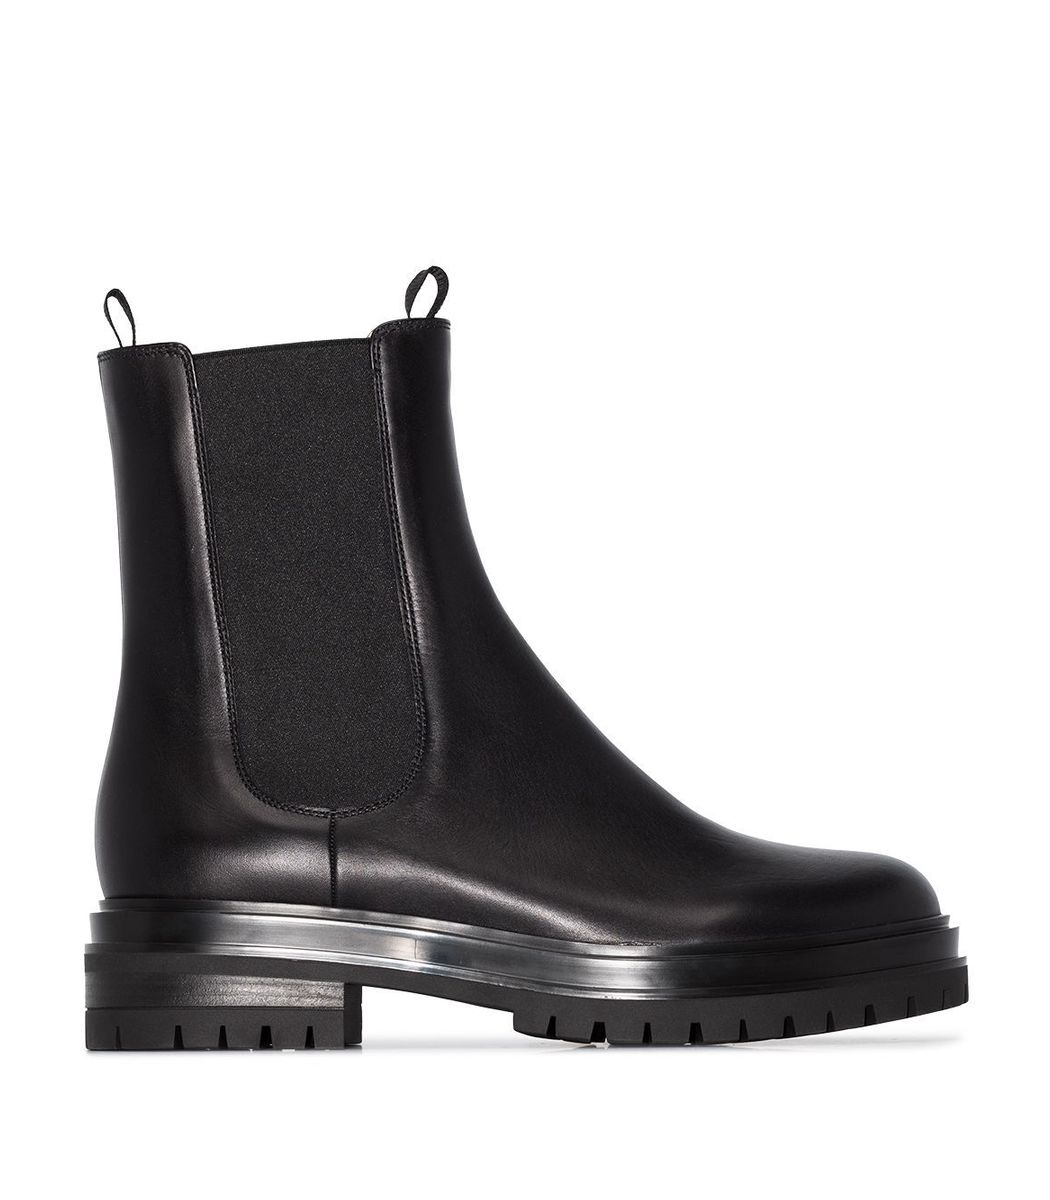 Gianvito Rossi Leathers Pull-On Chelsea Boot in Black